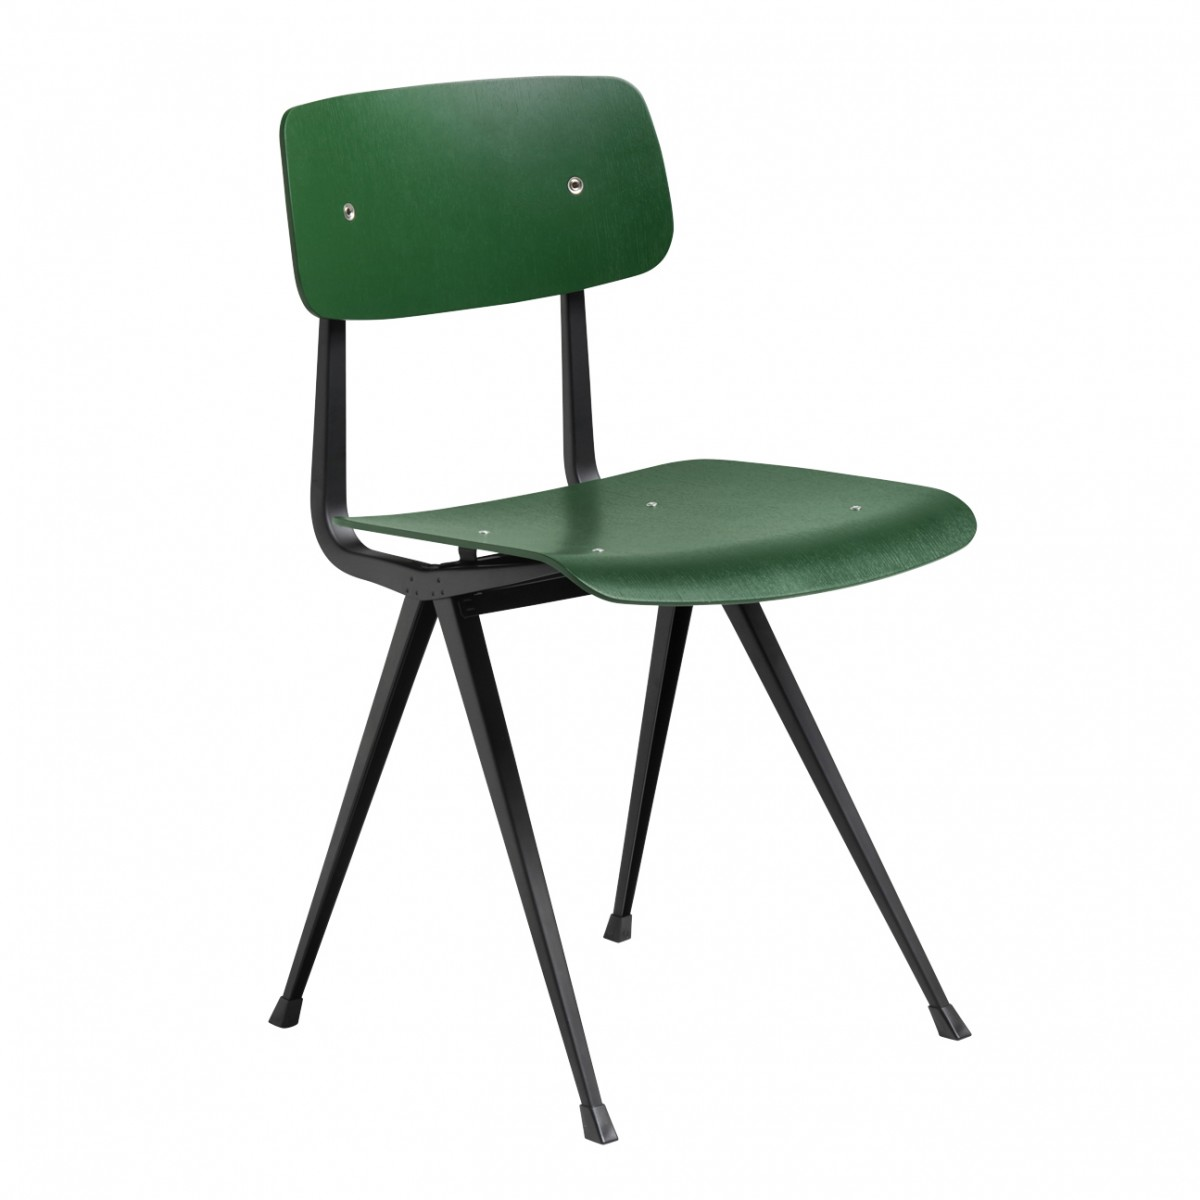 Result chair black powder coated steel green forest stained oak